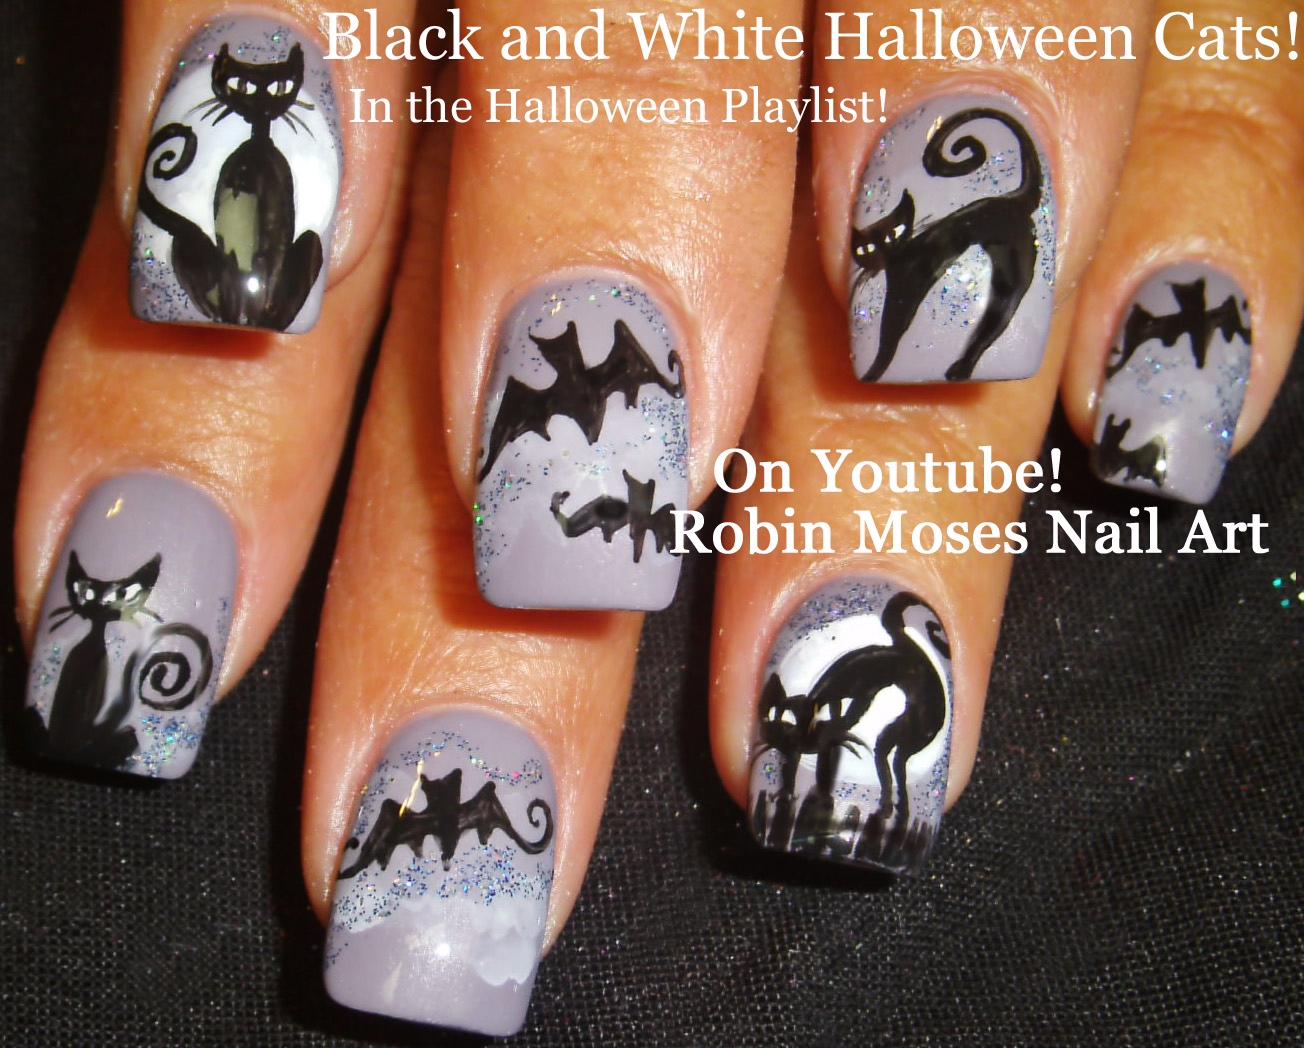 Robin moses nail art cute halloween skeleton nails skeleton nail art hot halloween no water marble flames nail design tutorial prinsesfo Images